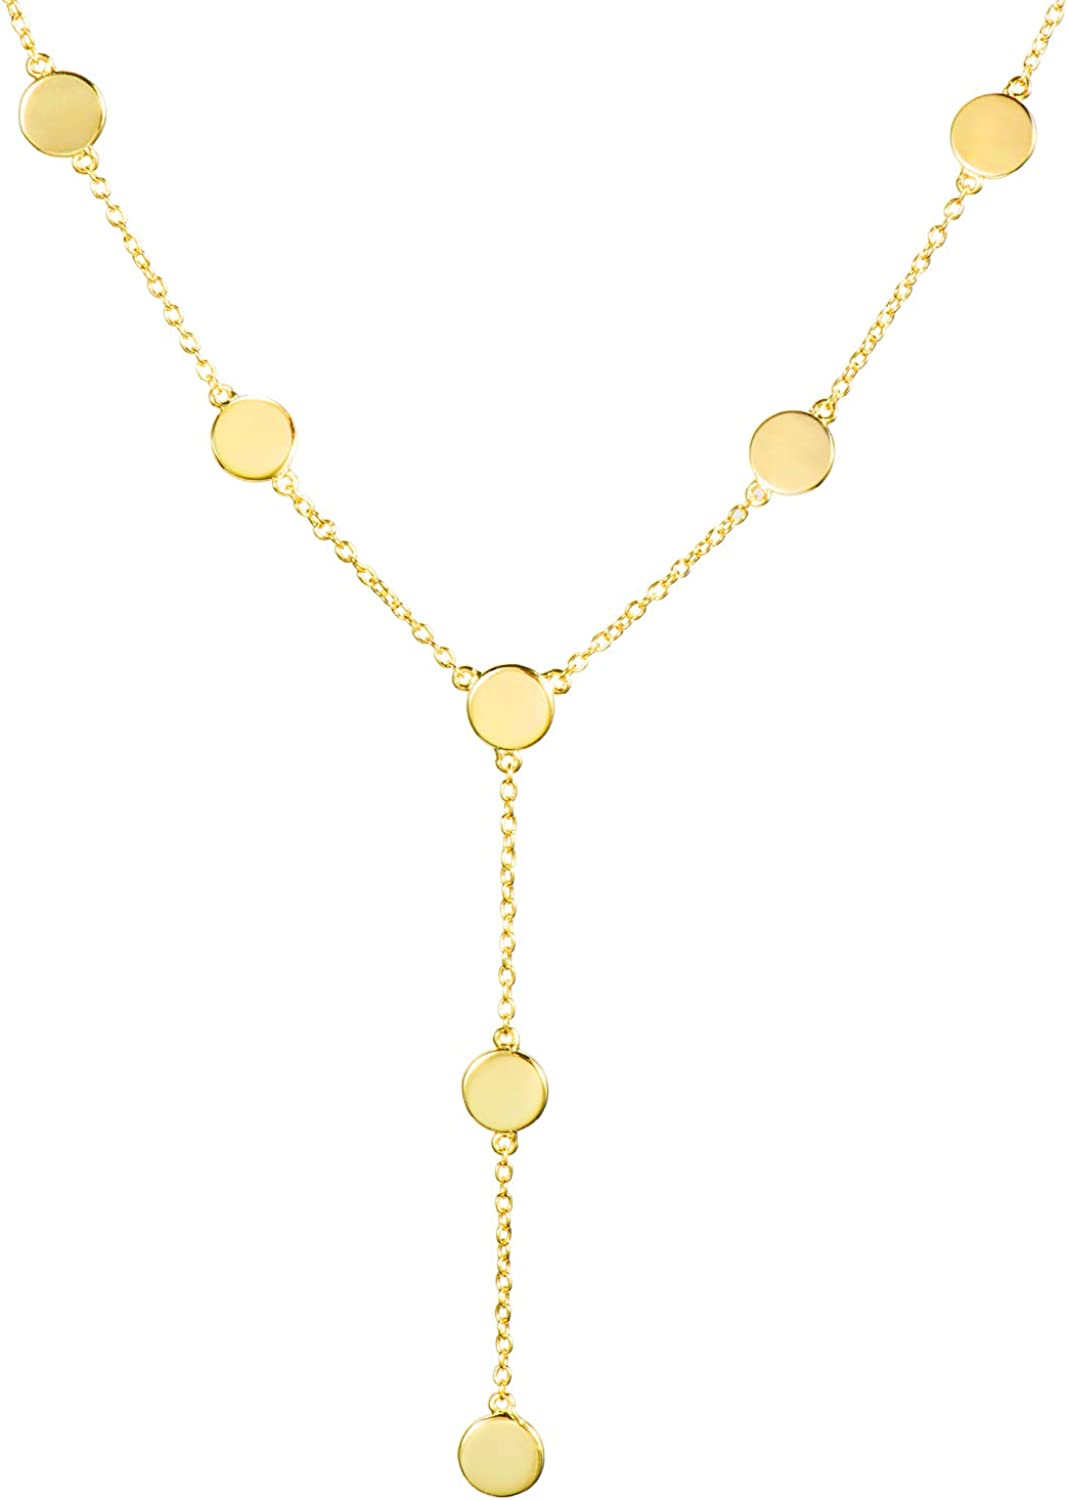 espere 18K Gold Plated Gold Coin Lariat Y Necklace | Small Medallion Gold Necklace Long for Layering